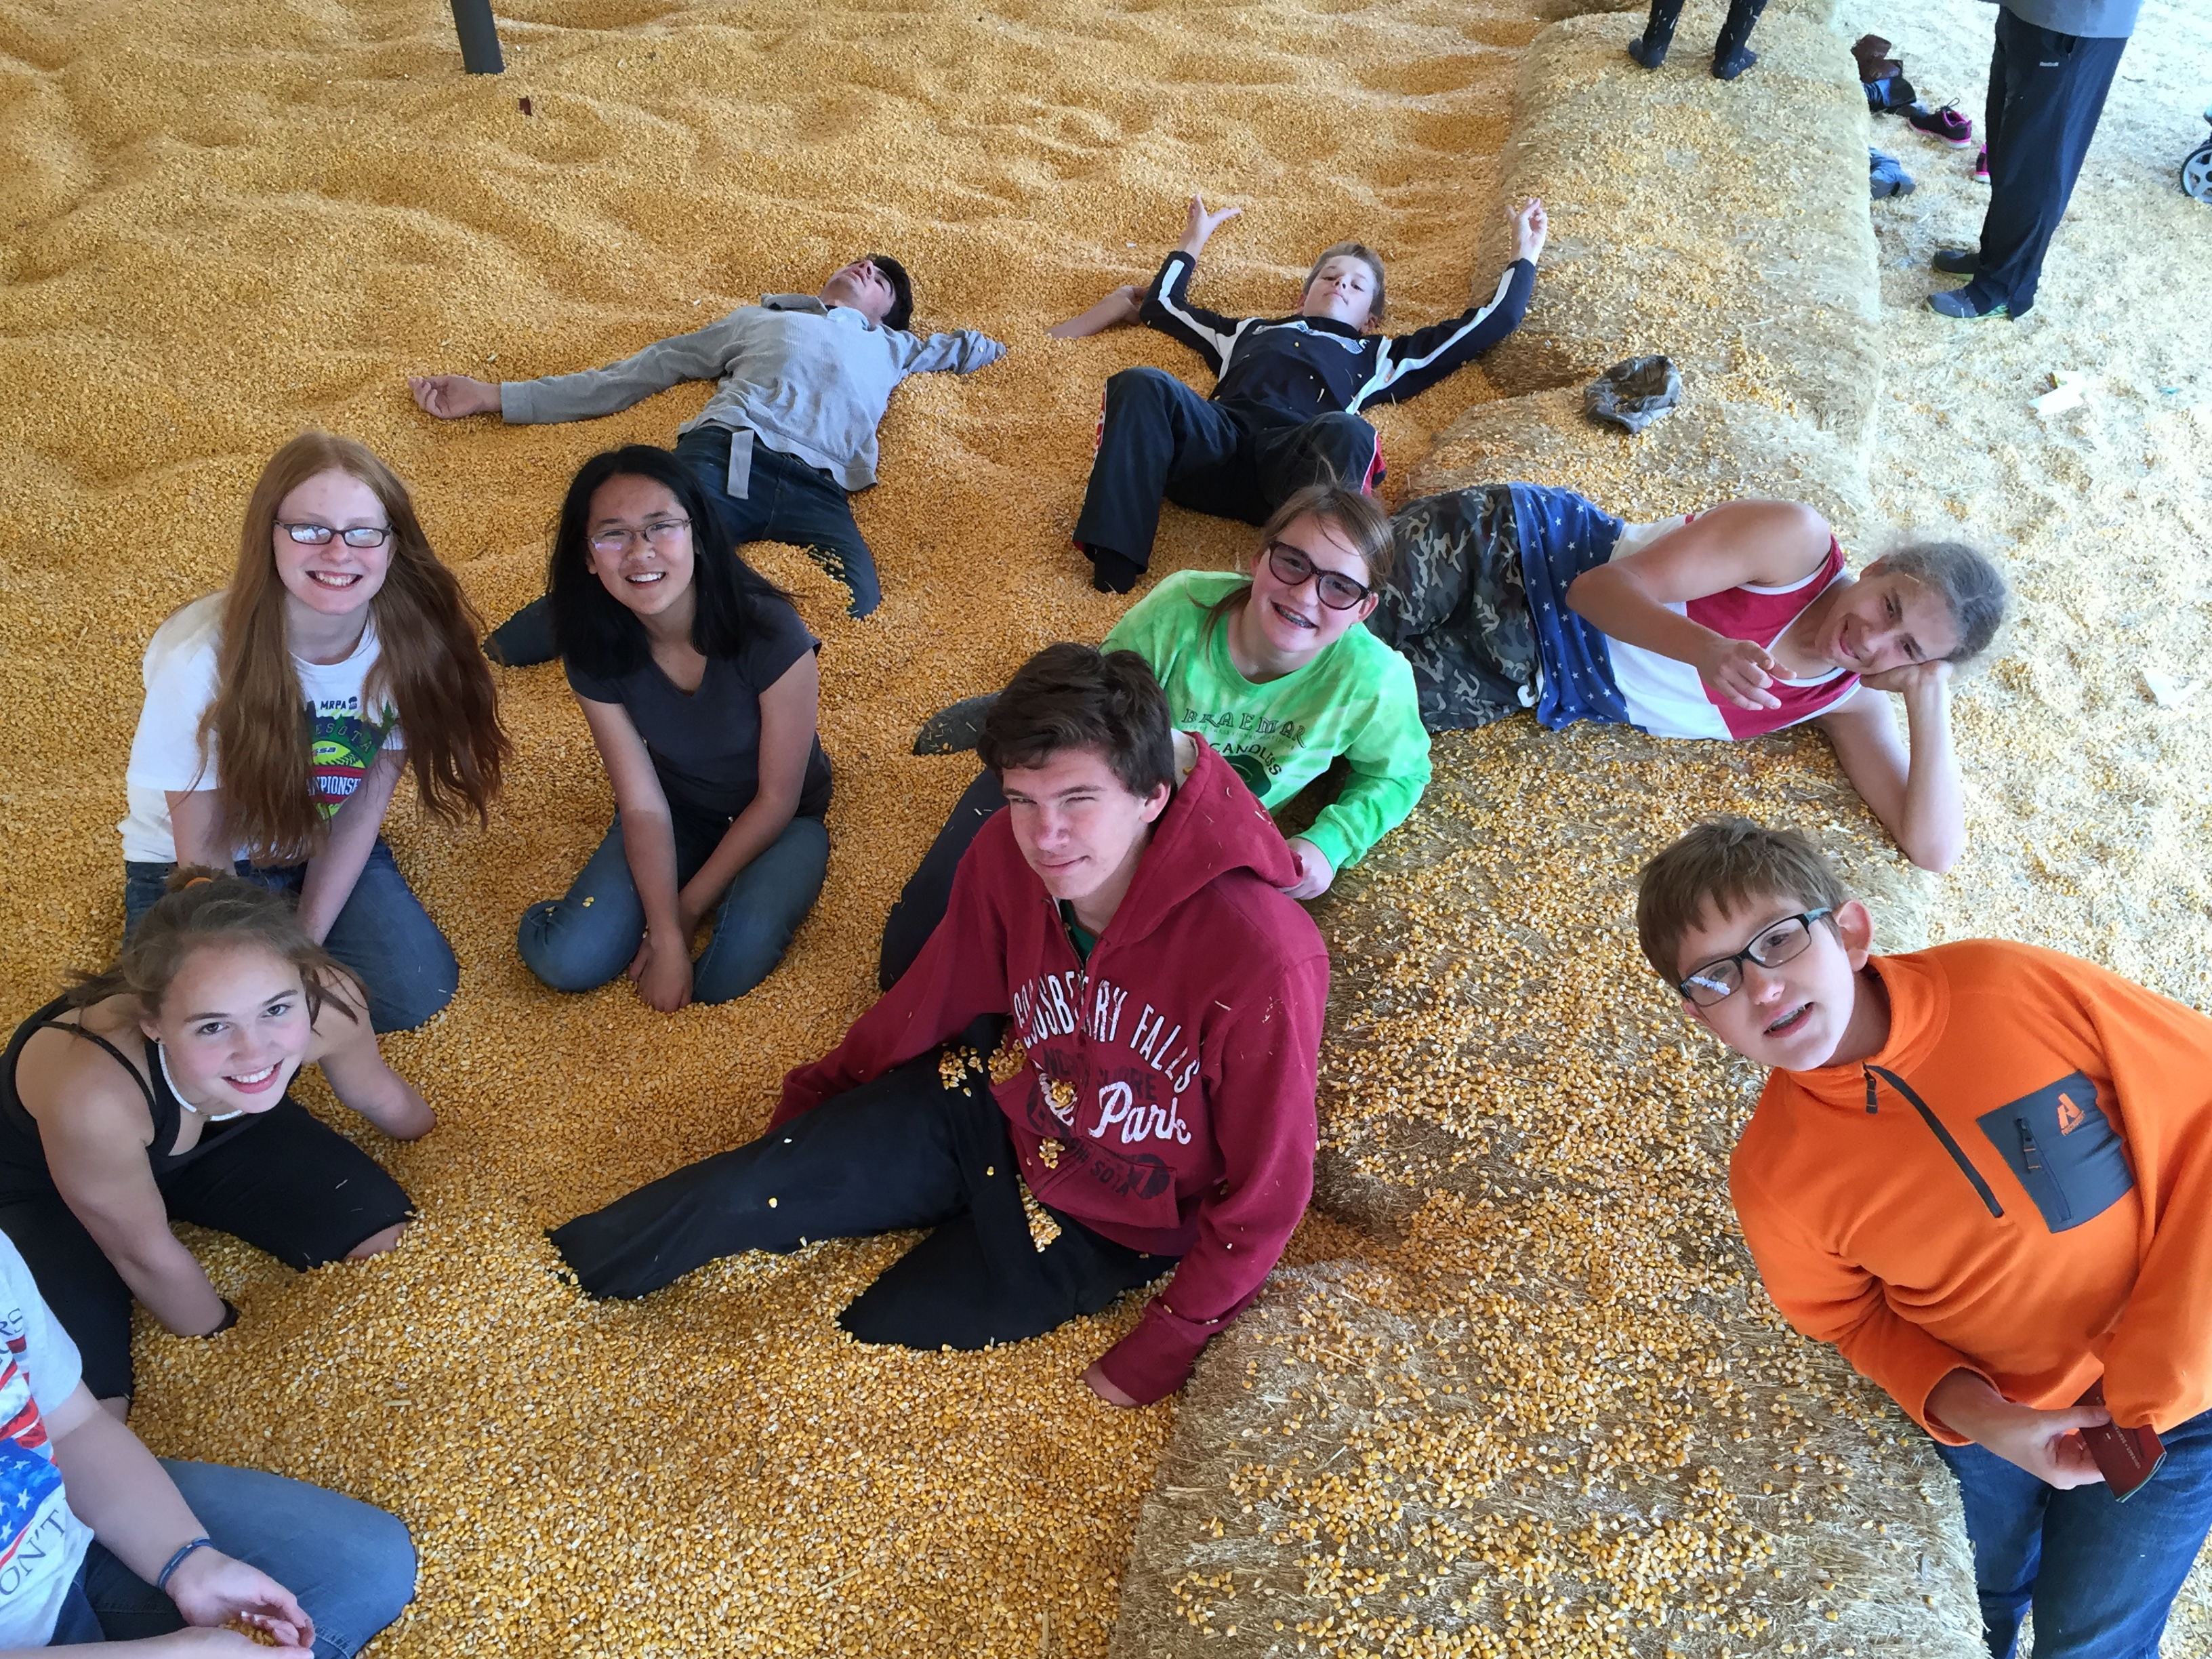 Group of youth at Severs Corn Maze.